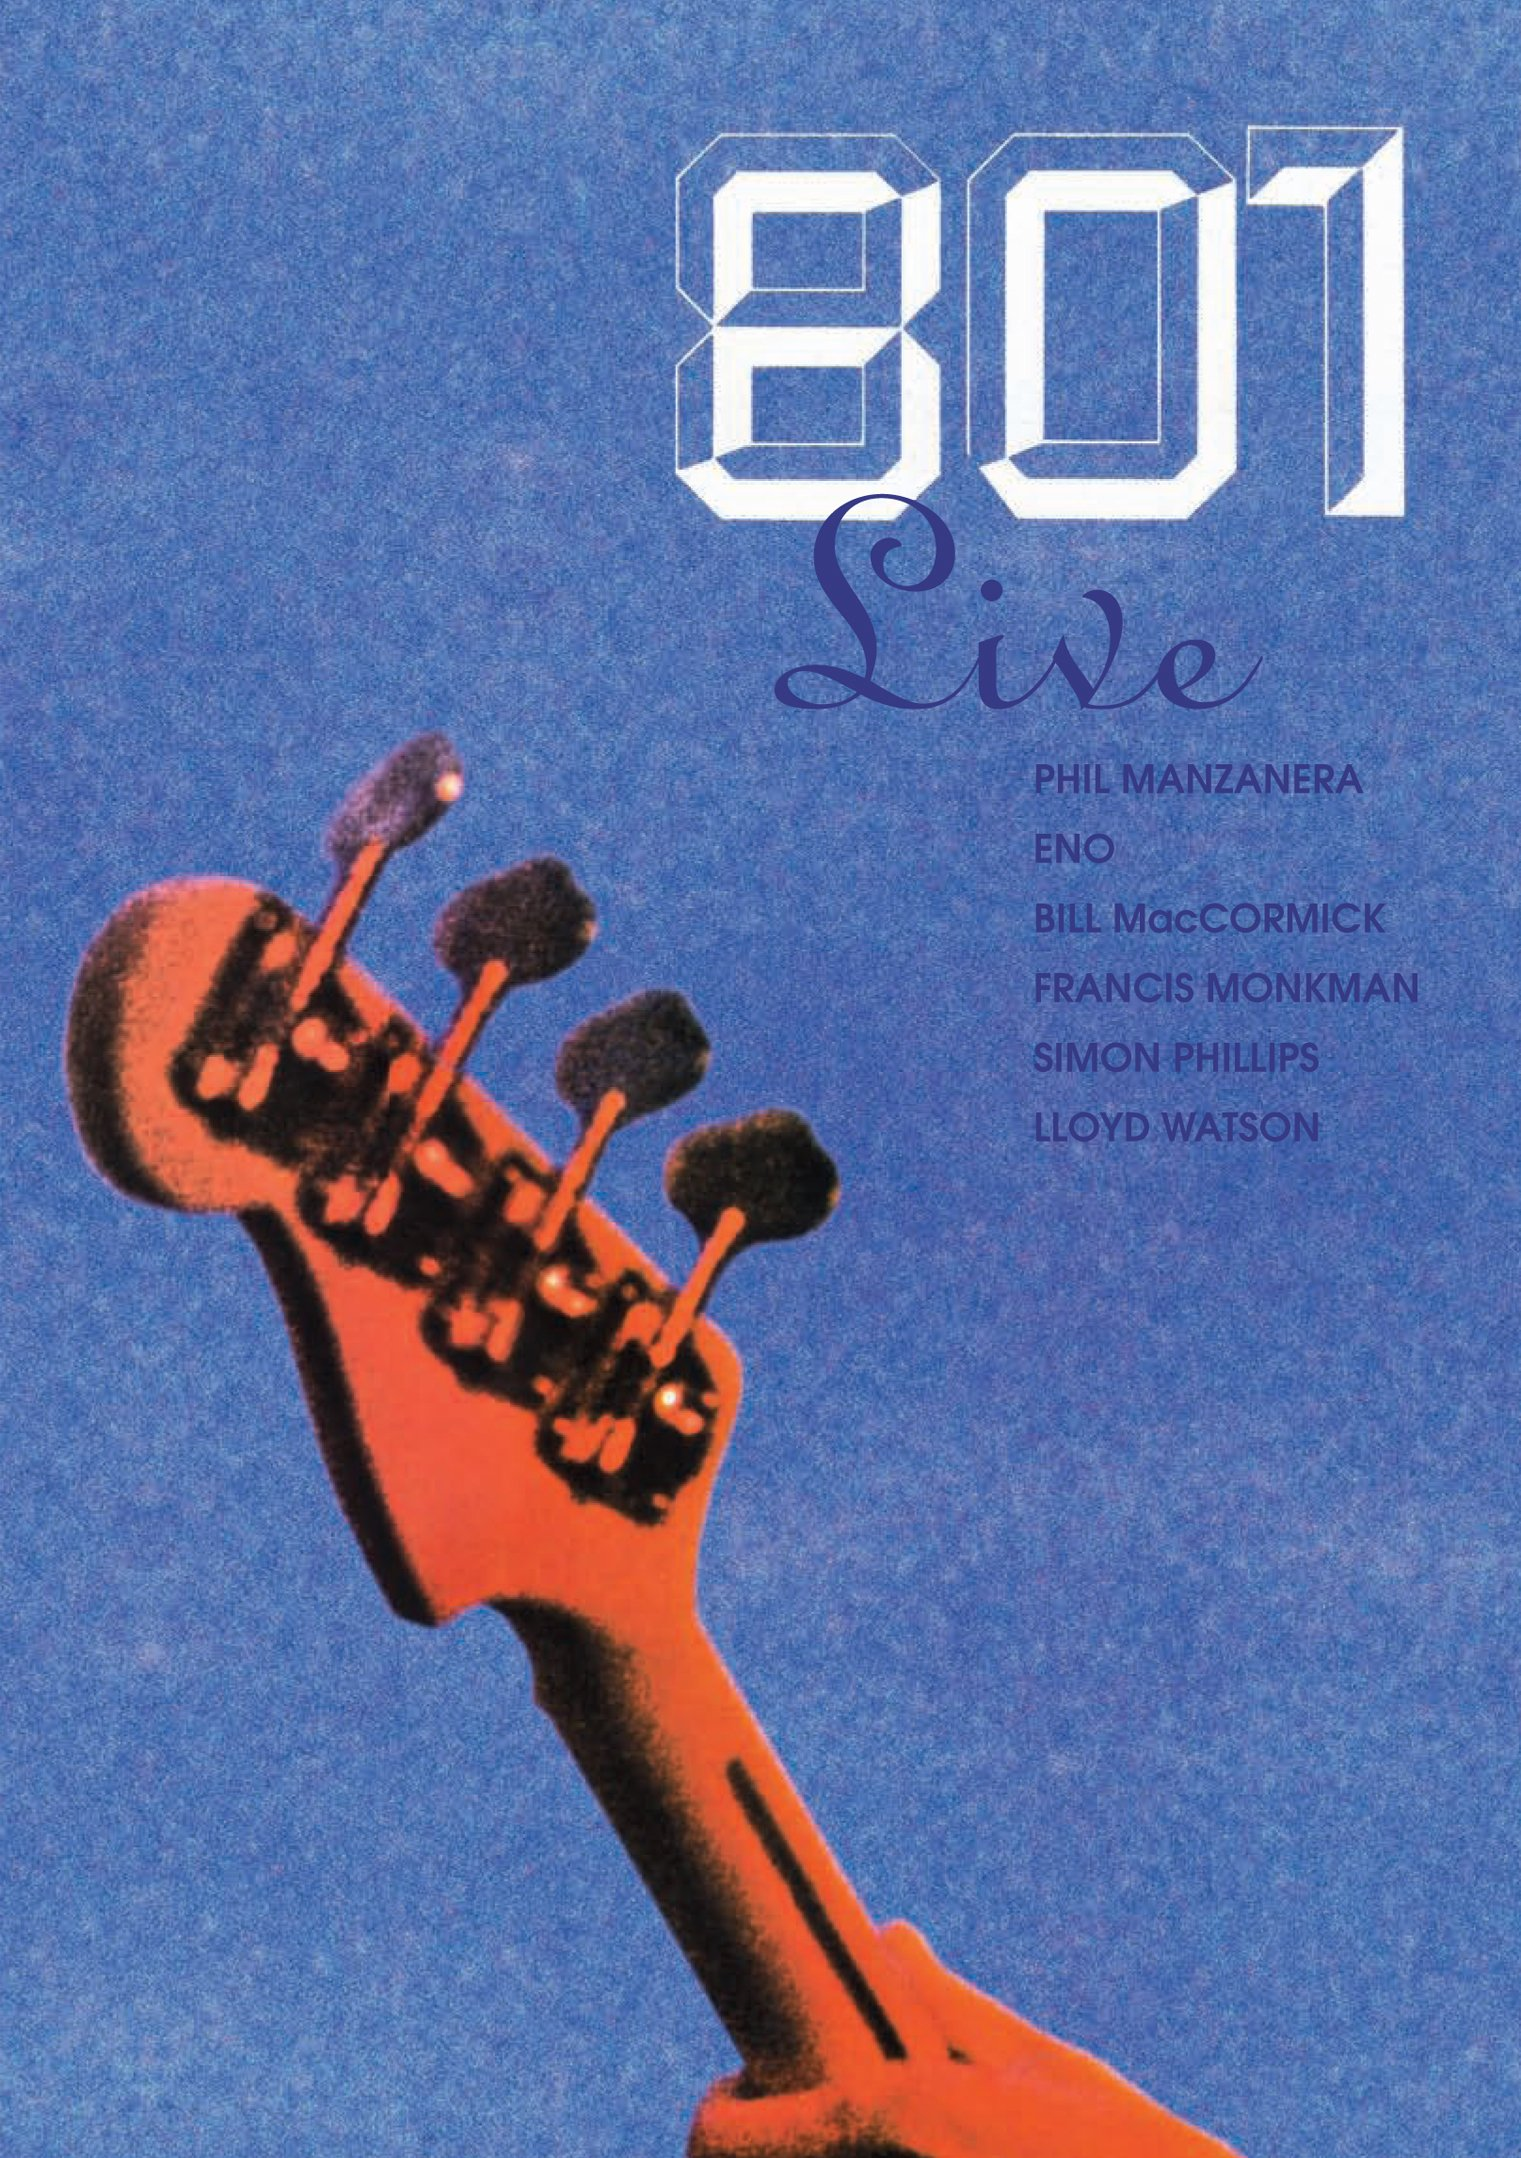 801 Live (Collector's Edition) by EXPRESSION RECORDS